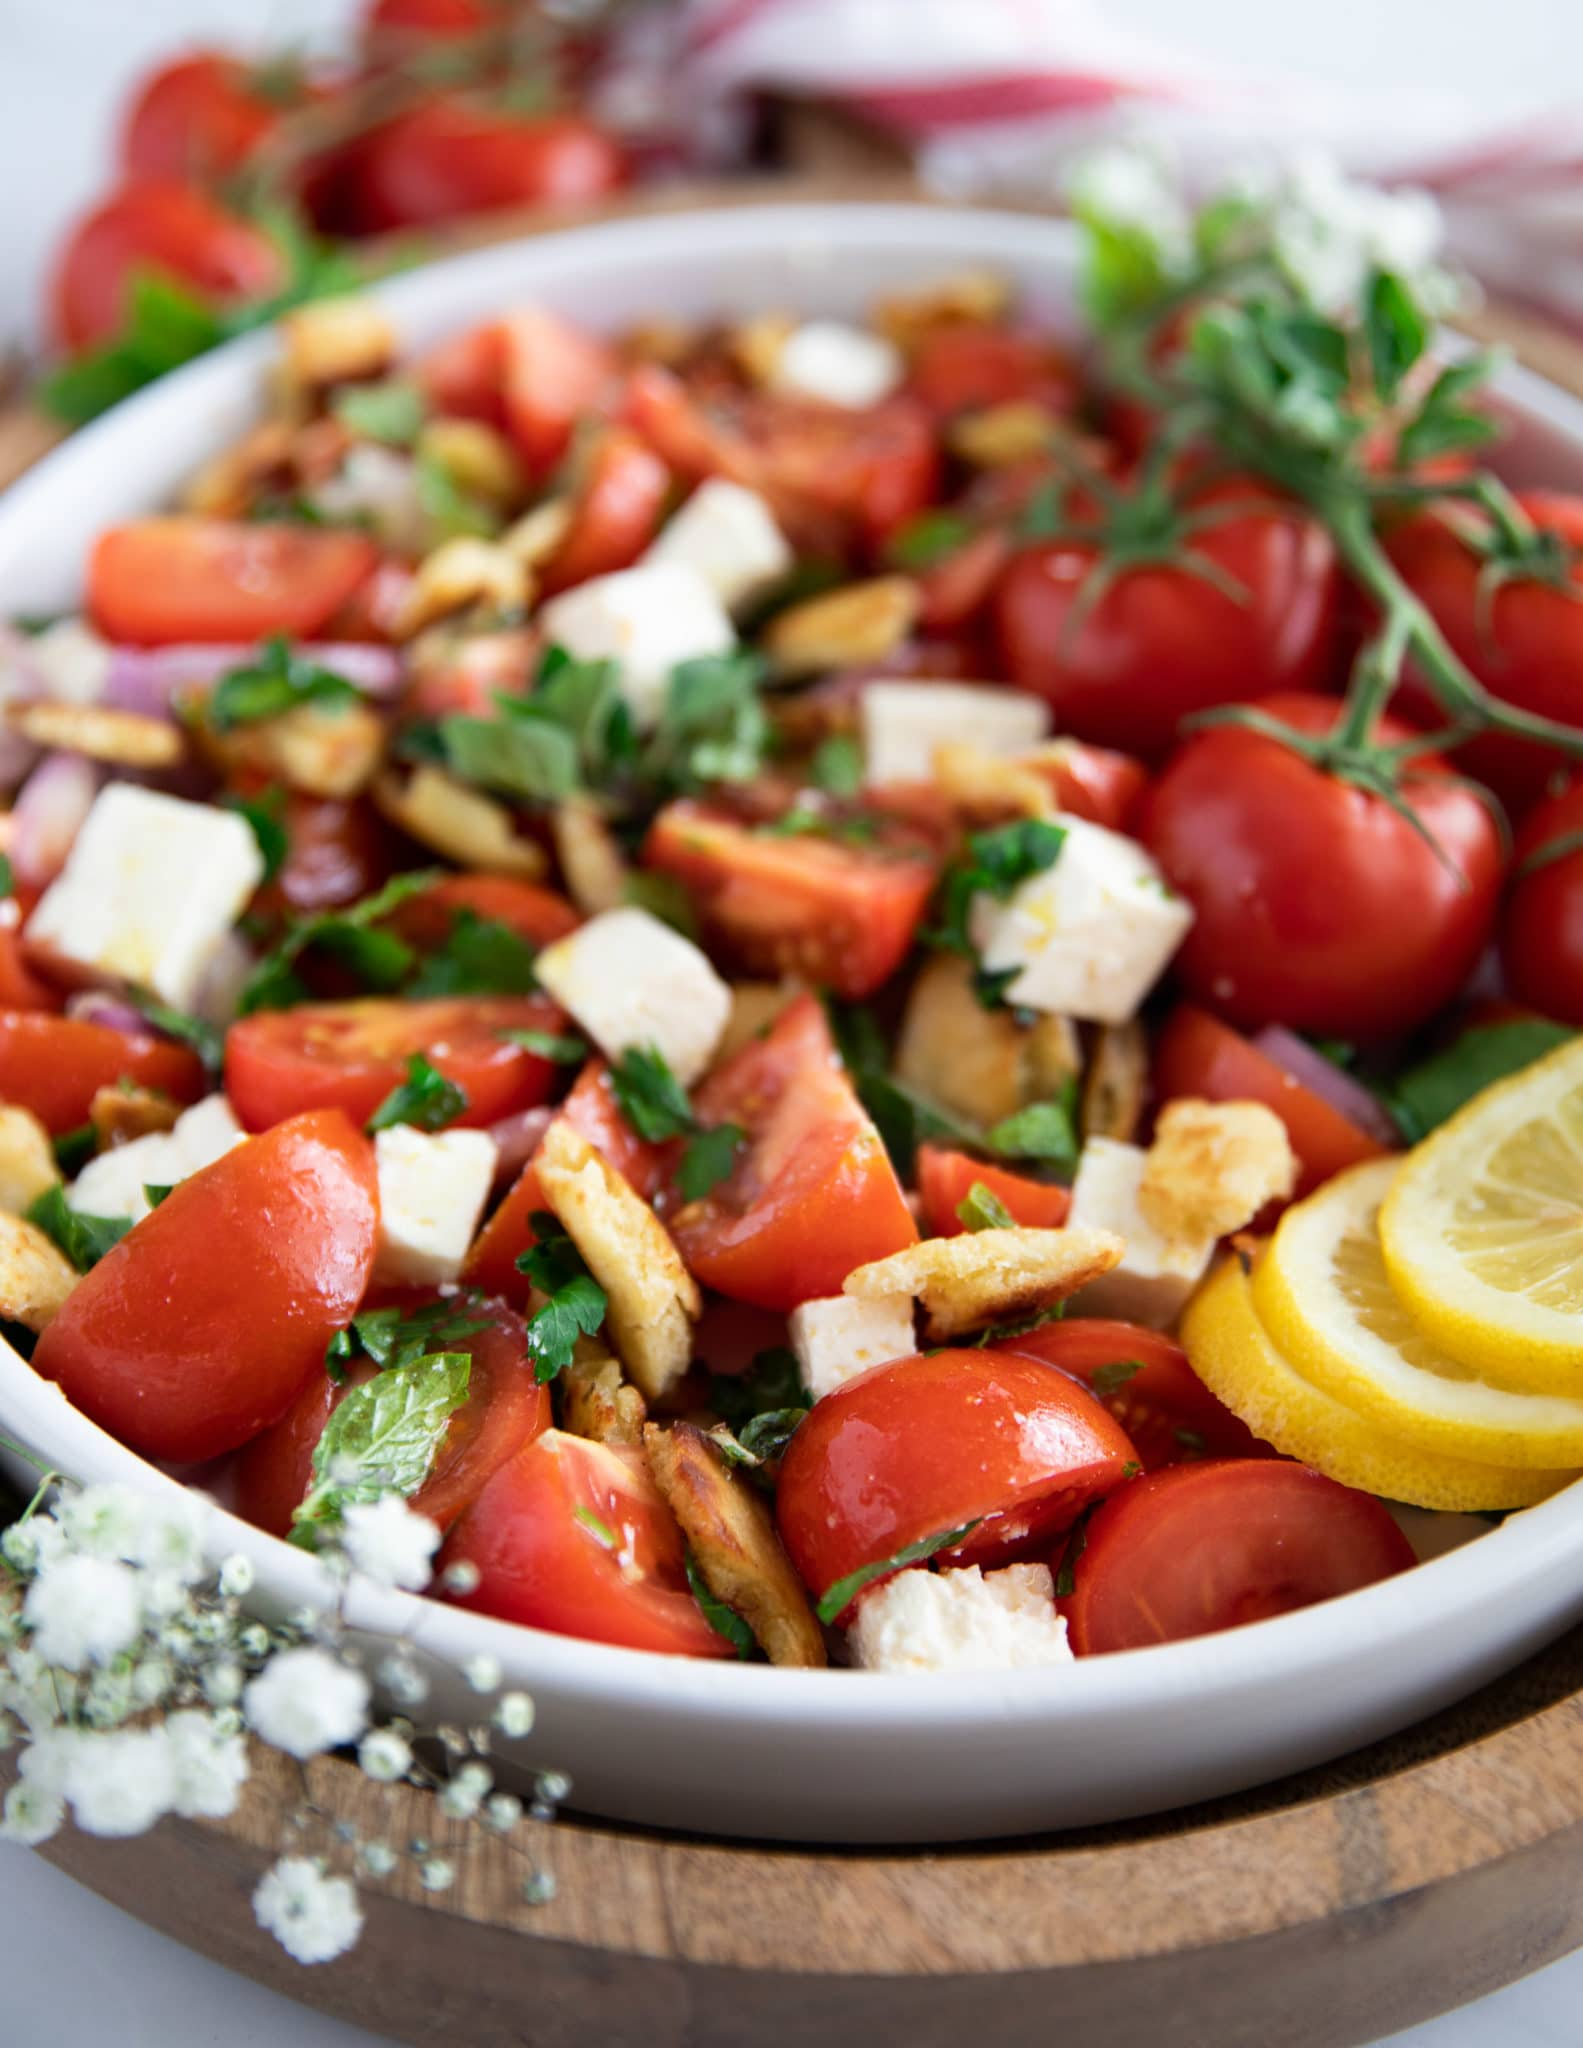 A plate of tomato salad showing the fresh herbs, feta and bread surrounded by lemon slices on a wooden board